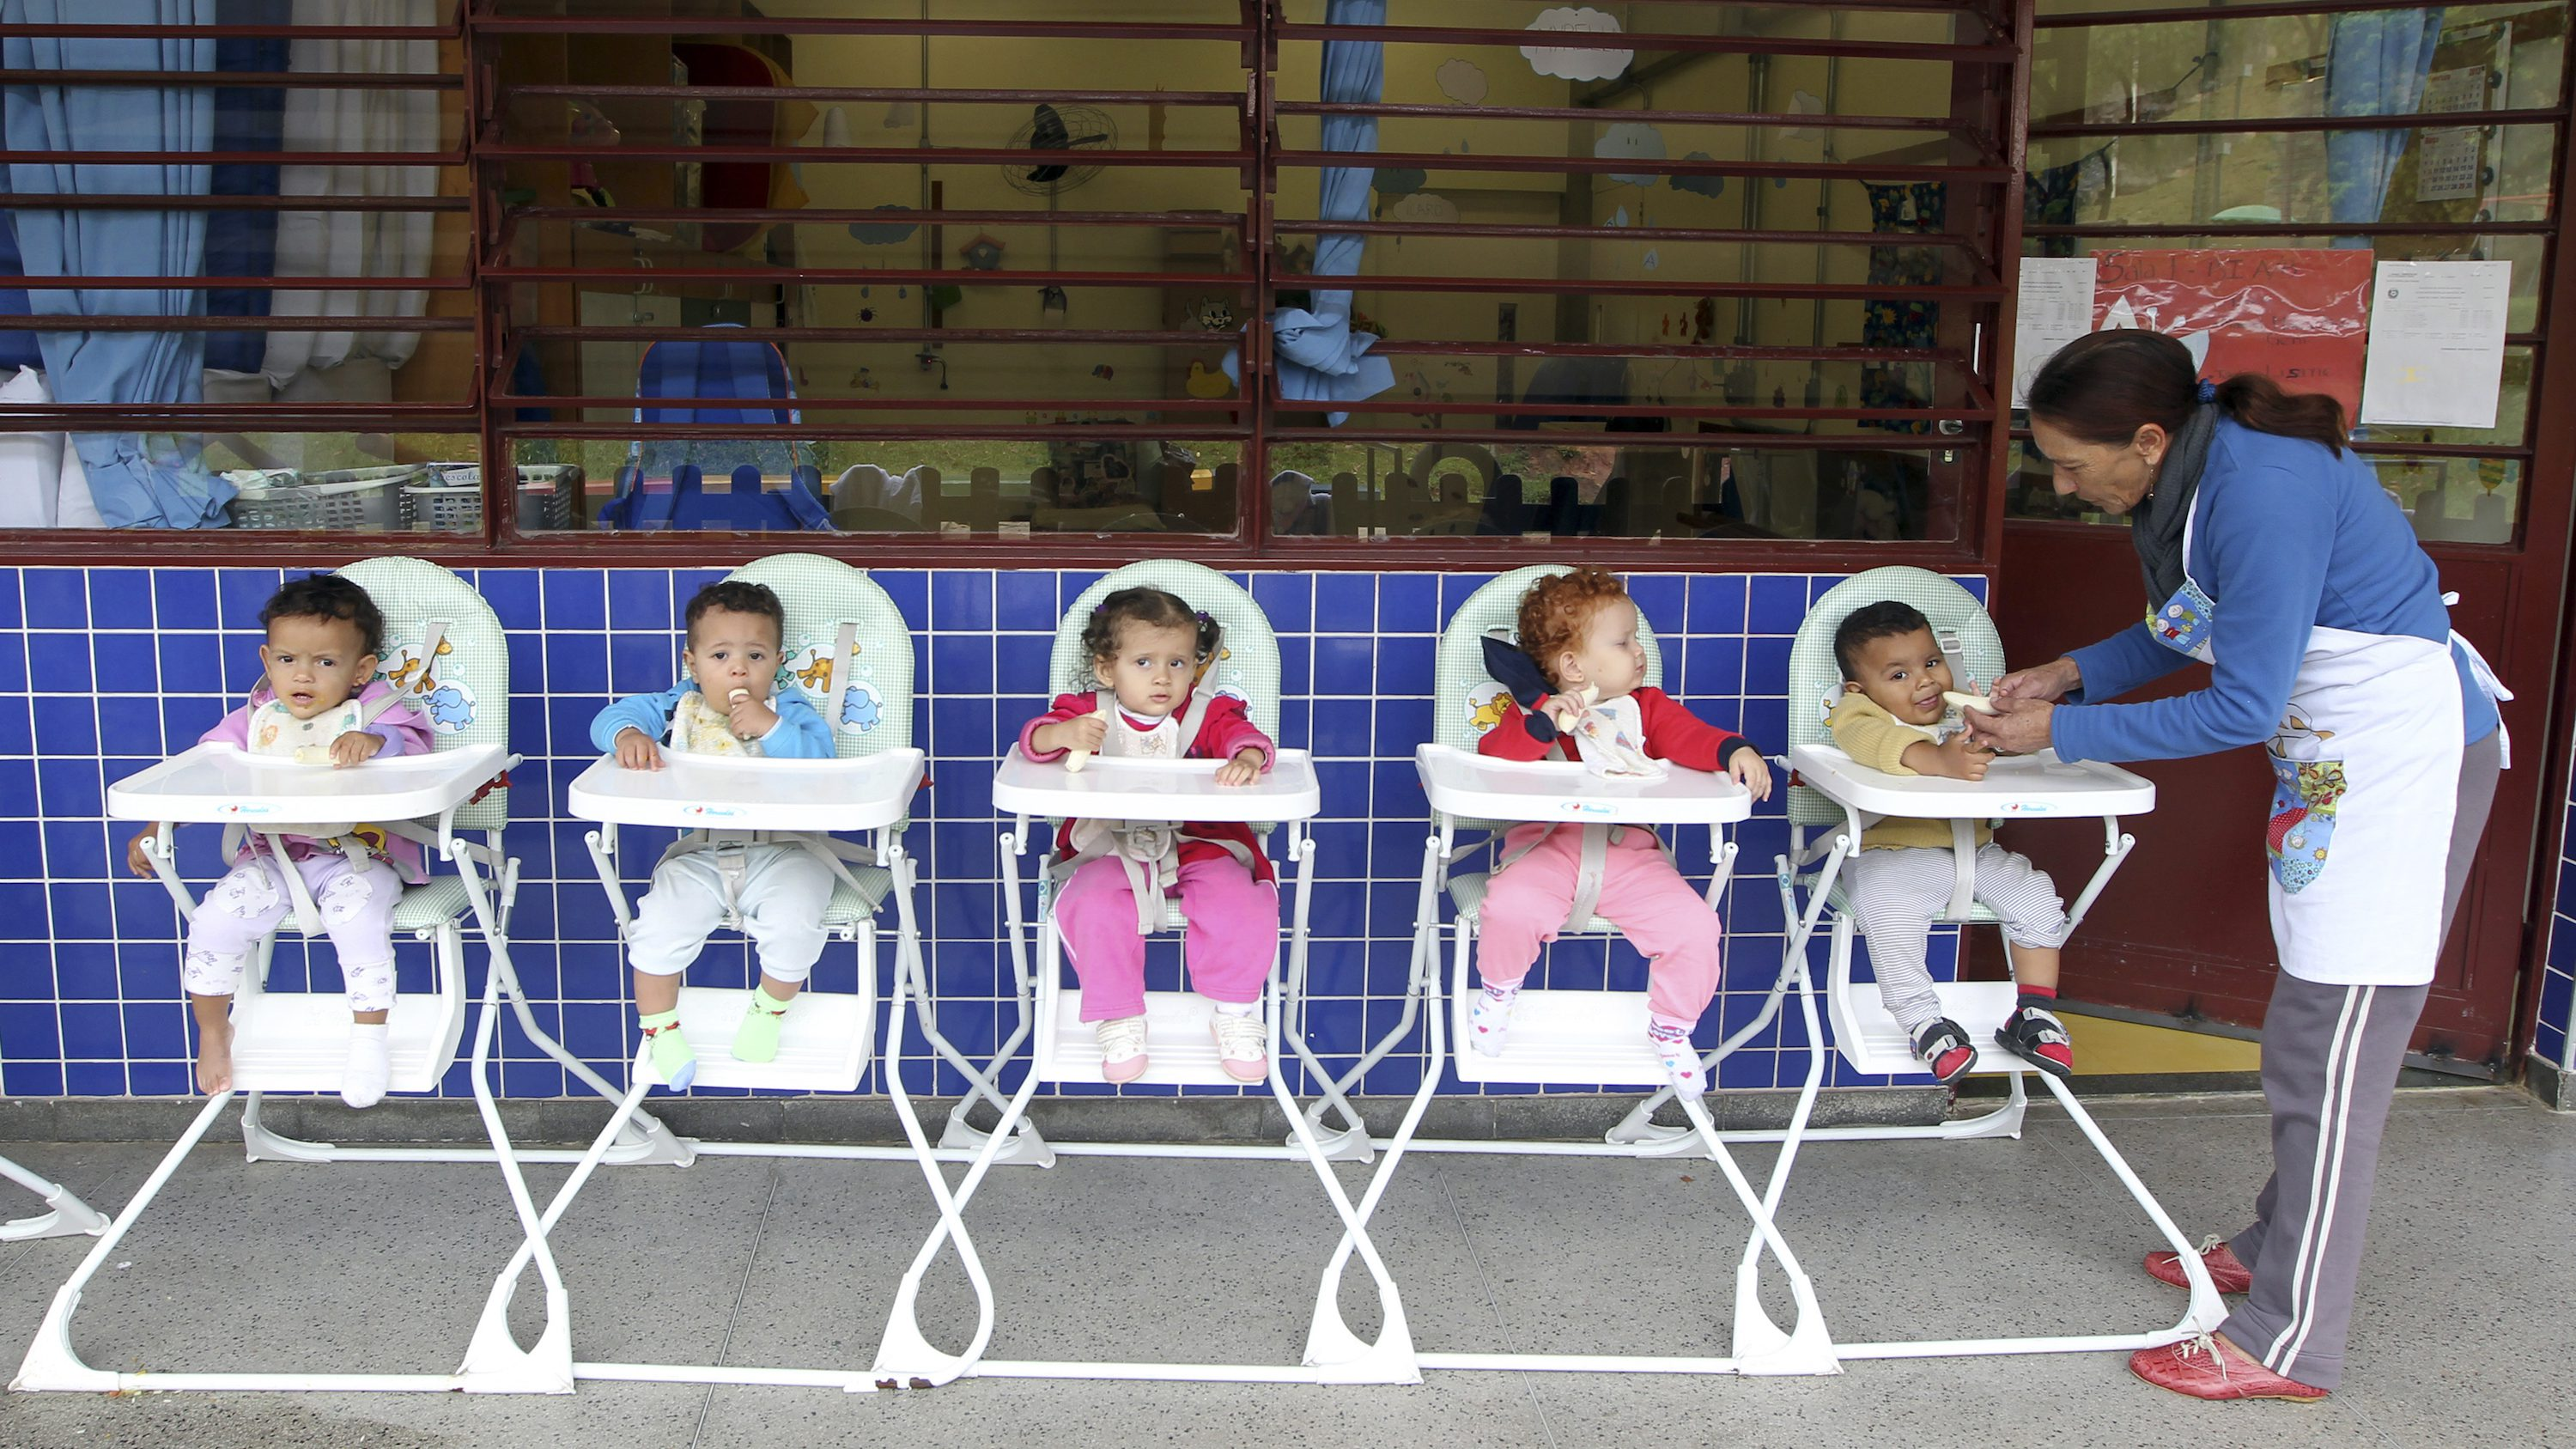 Children sit in high chairs as a woman feeds them lunch at a public school in Sao Paulo March 21, 2013.